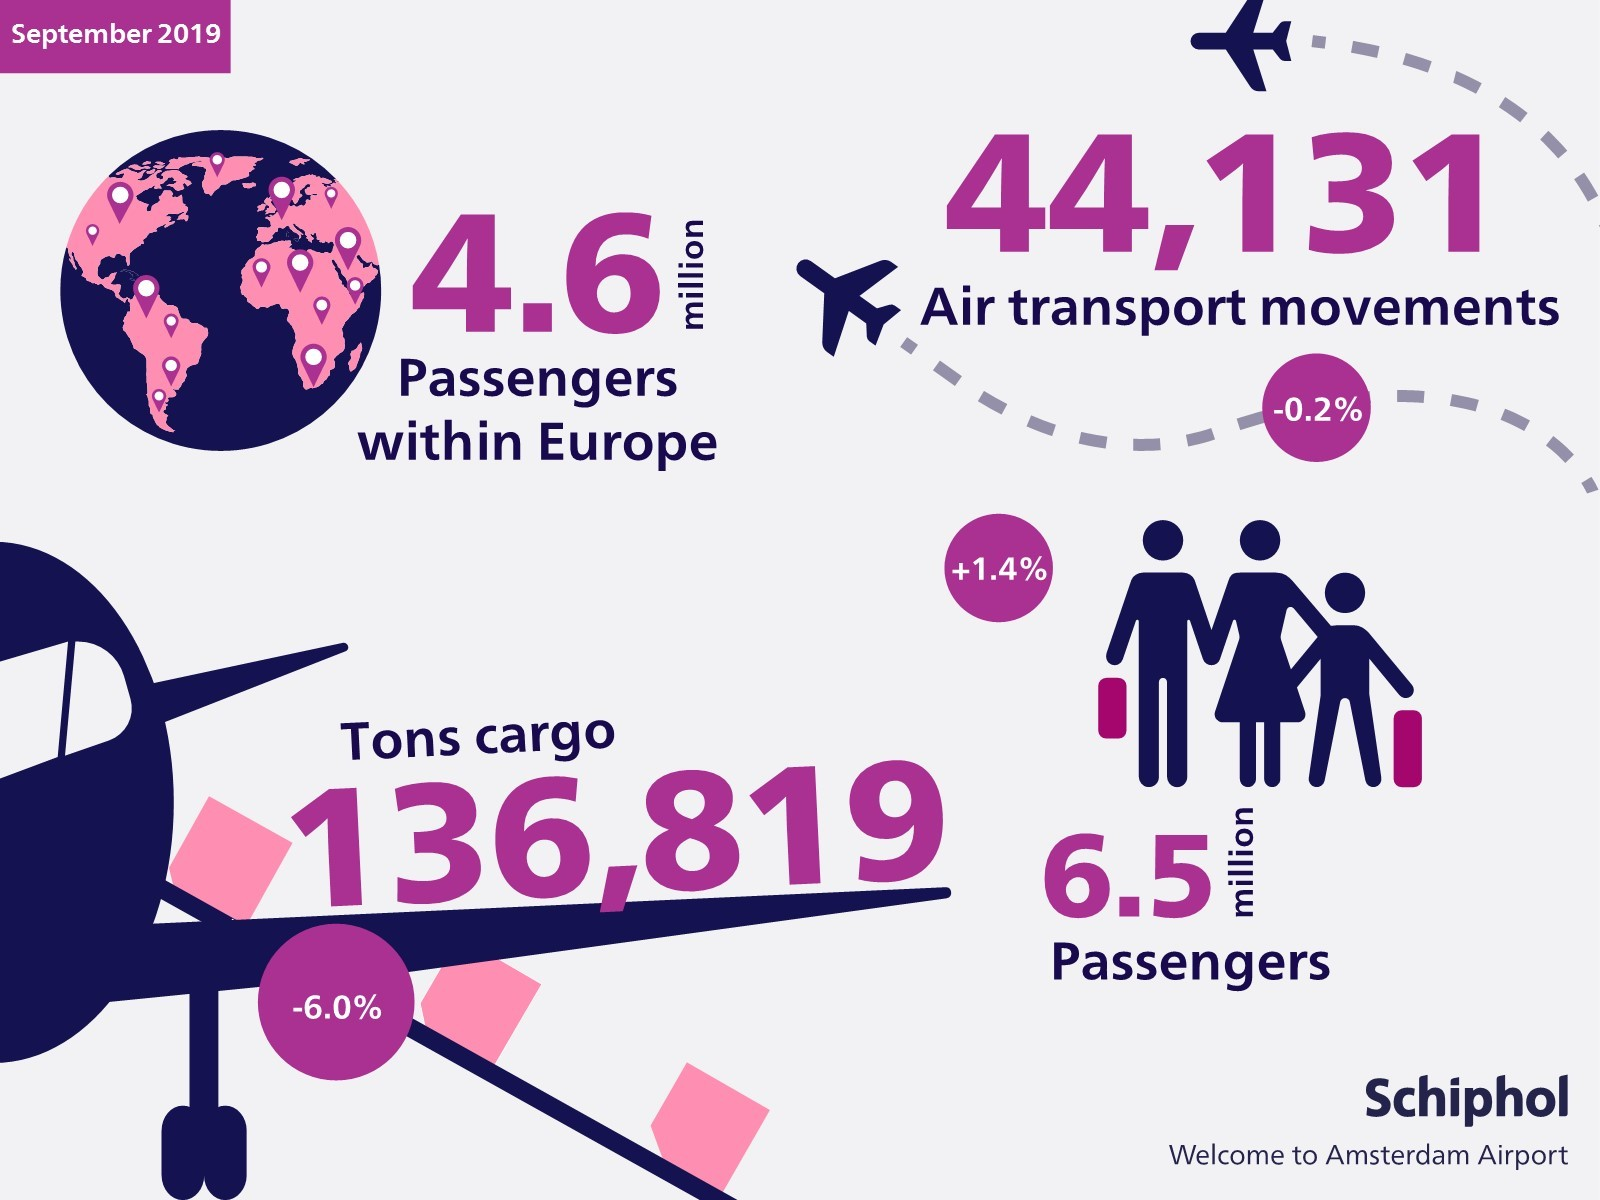 Traffic and transport figures for September 2019